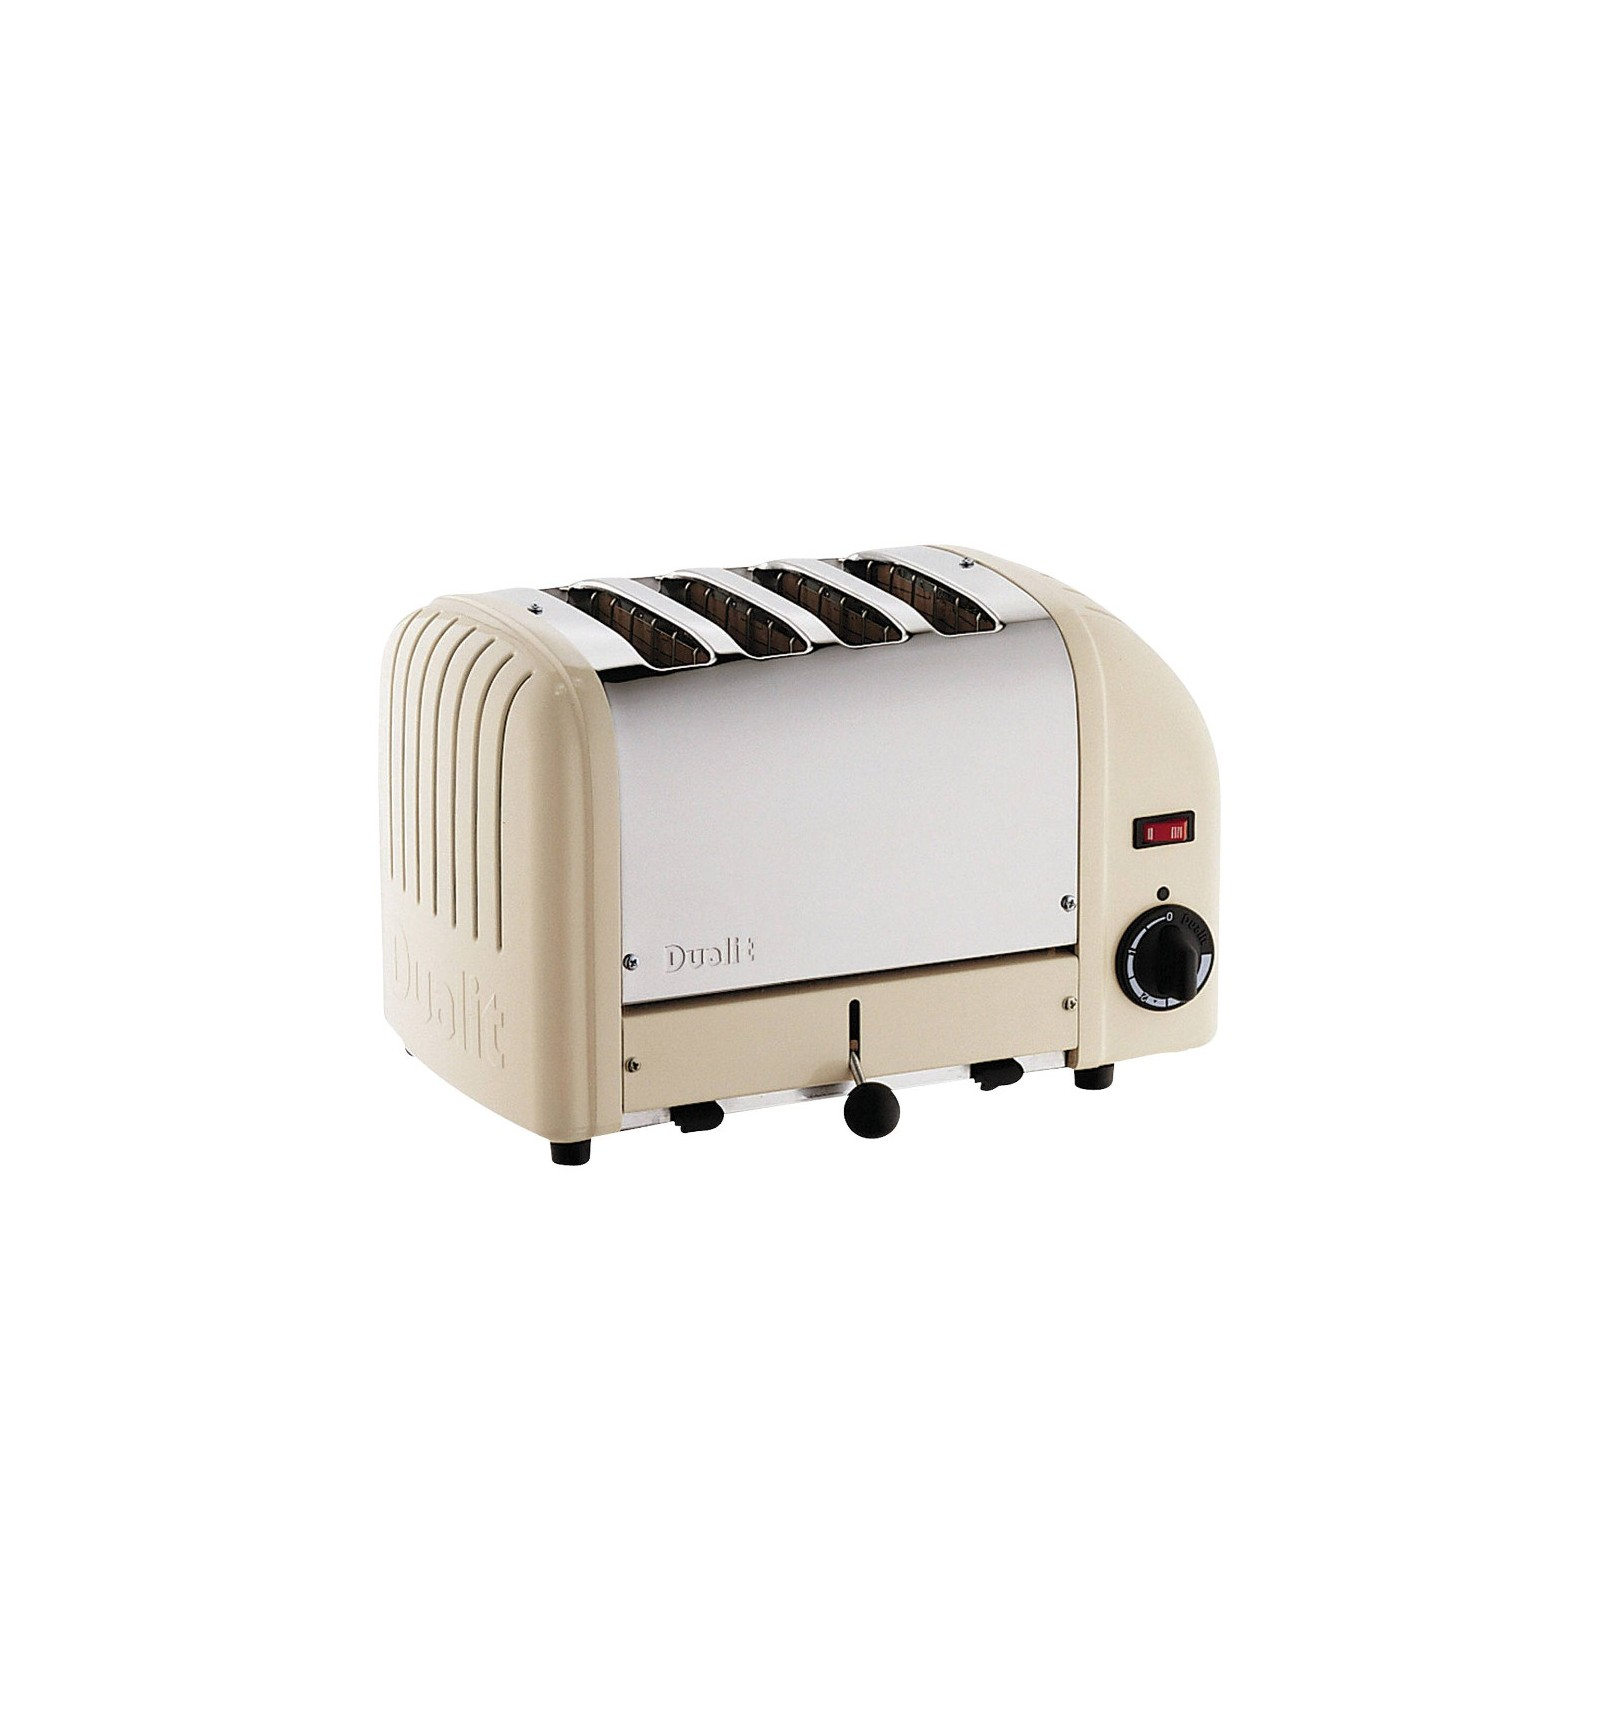 kitchen slice dualit slot original amazon toaster four toaser the newgen com classic canvas white dp